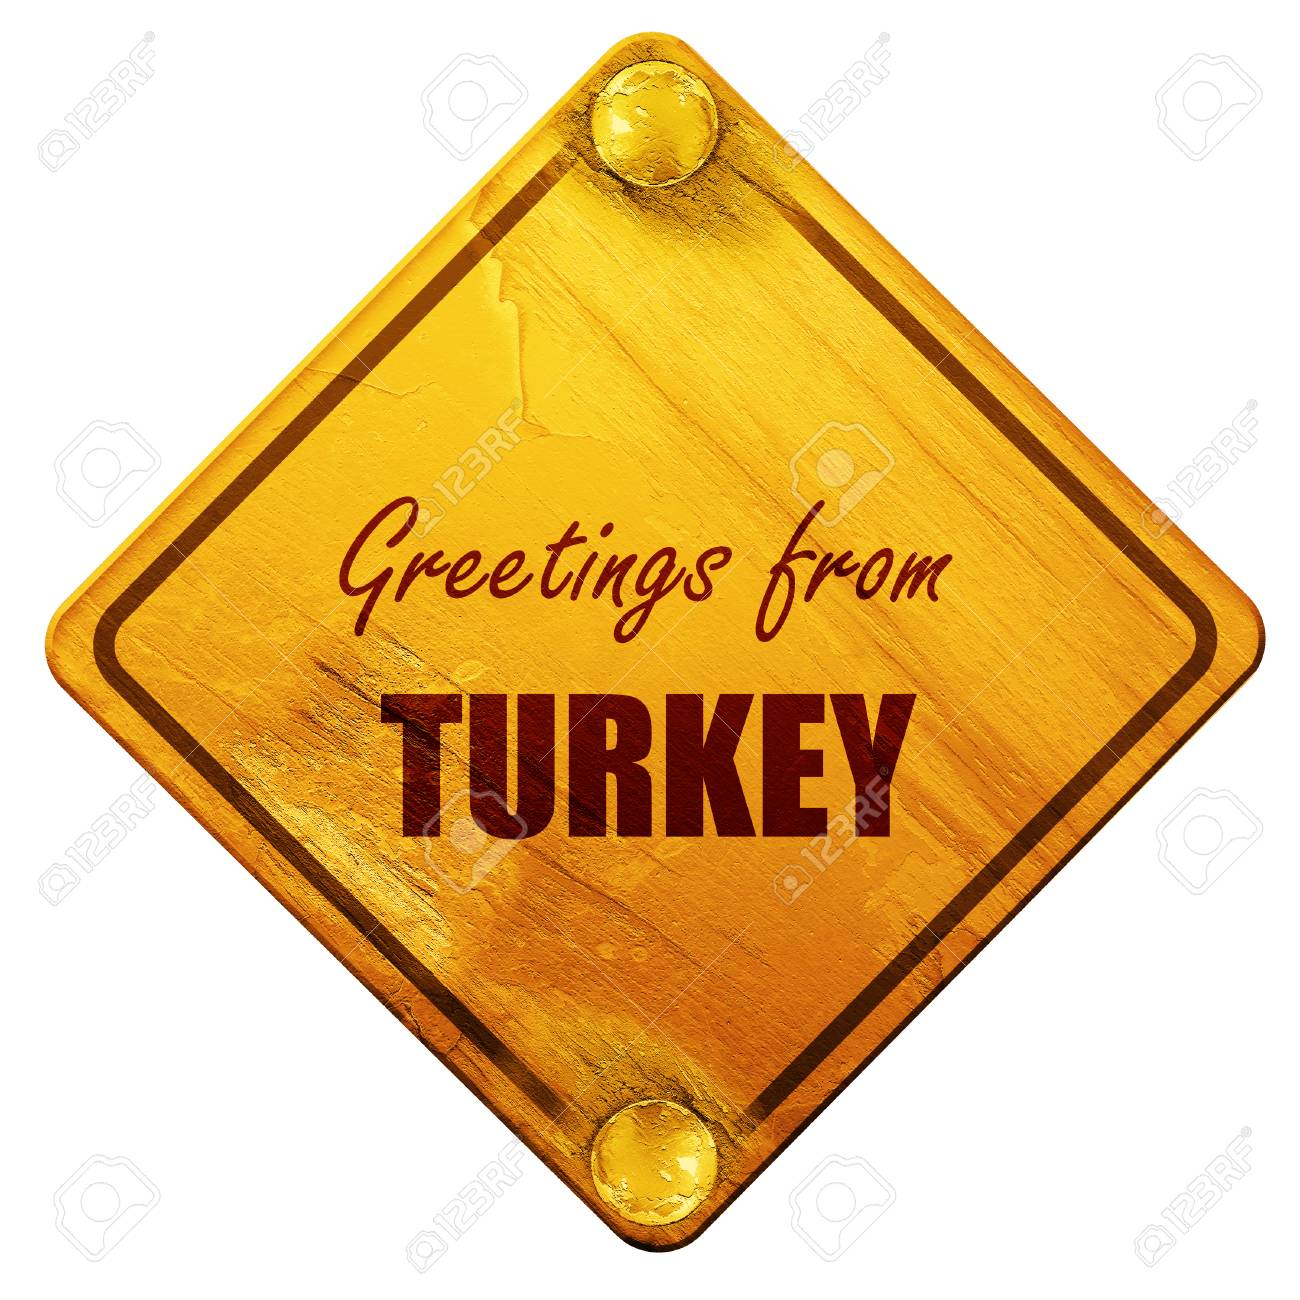 Greetings from turkey card with some soft highlights 3d rendering greetings from turkey card with some soft highlights 3d rendering yellow road sign on m4hsunfo